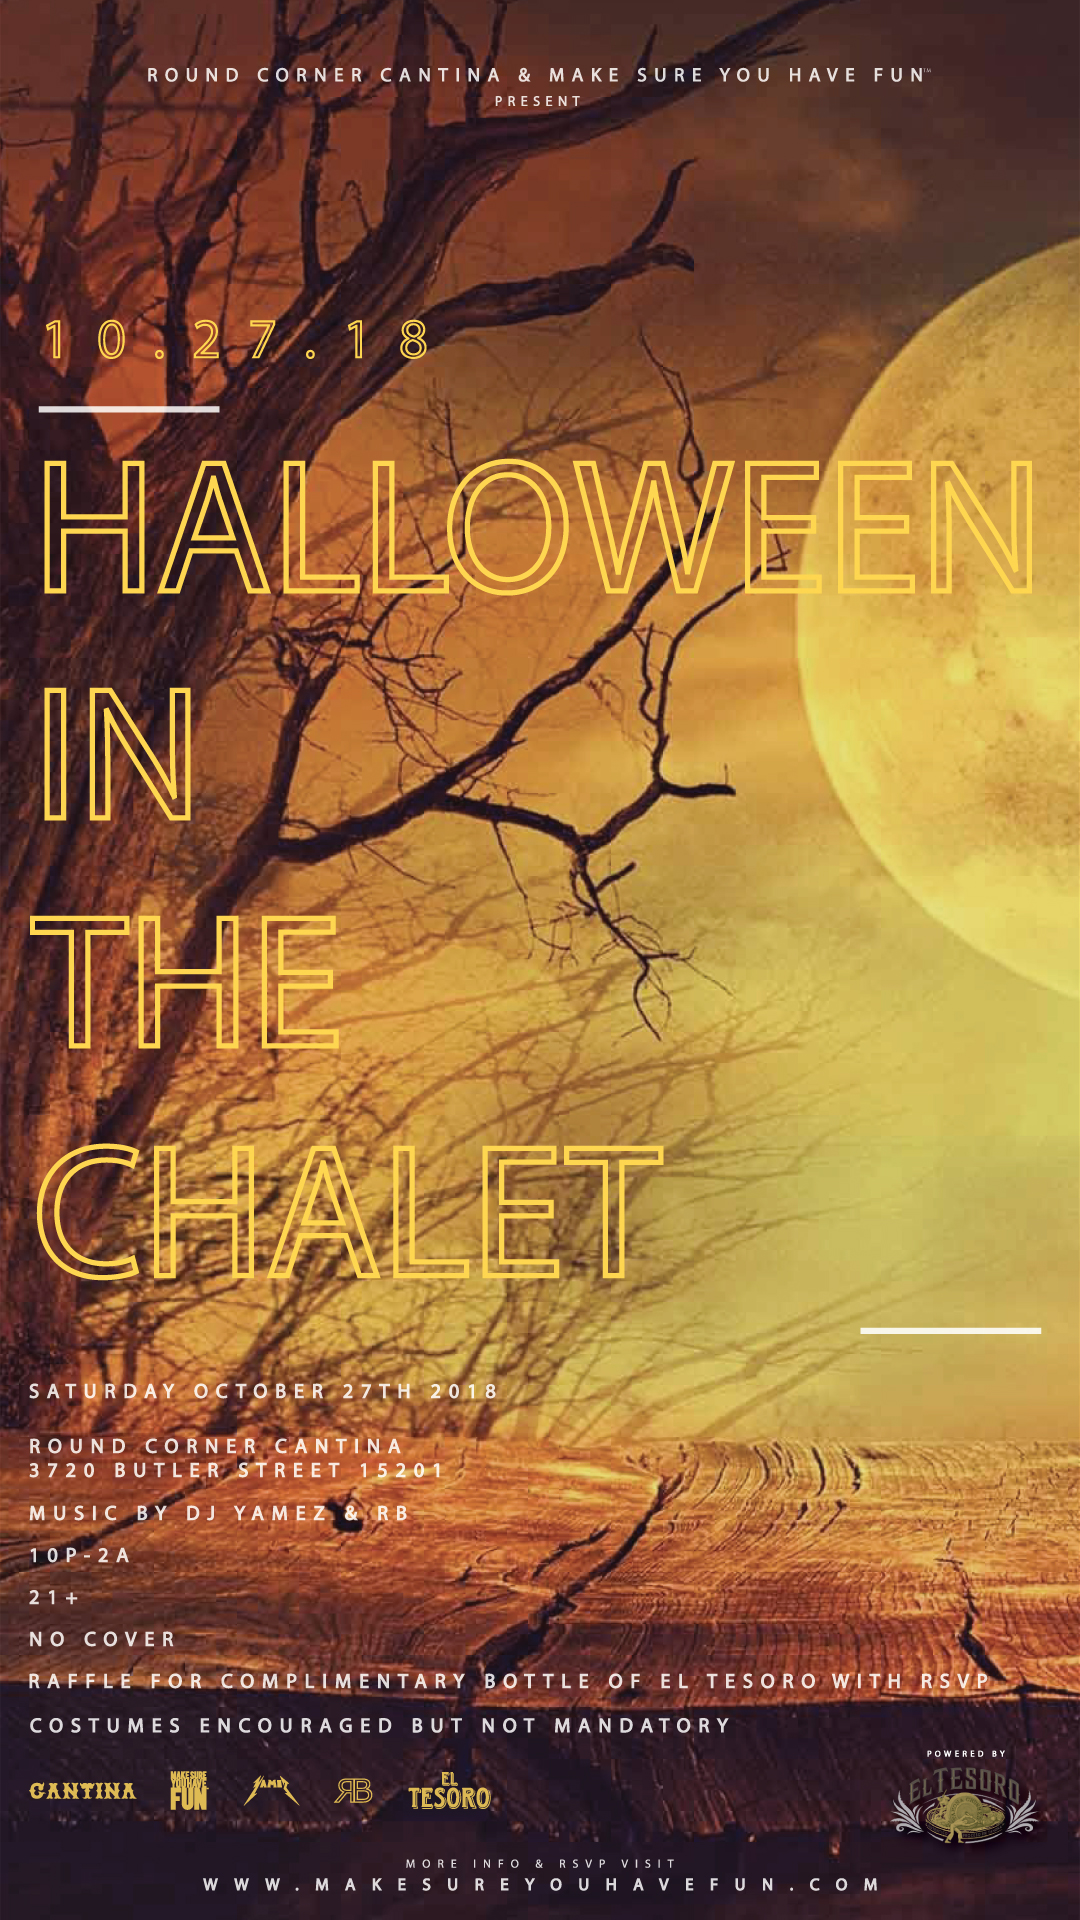 Halloween-At-Cantina-IG-Story-Flyer.jpg